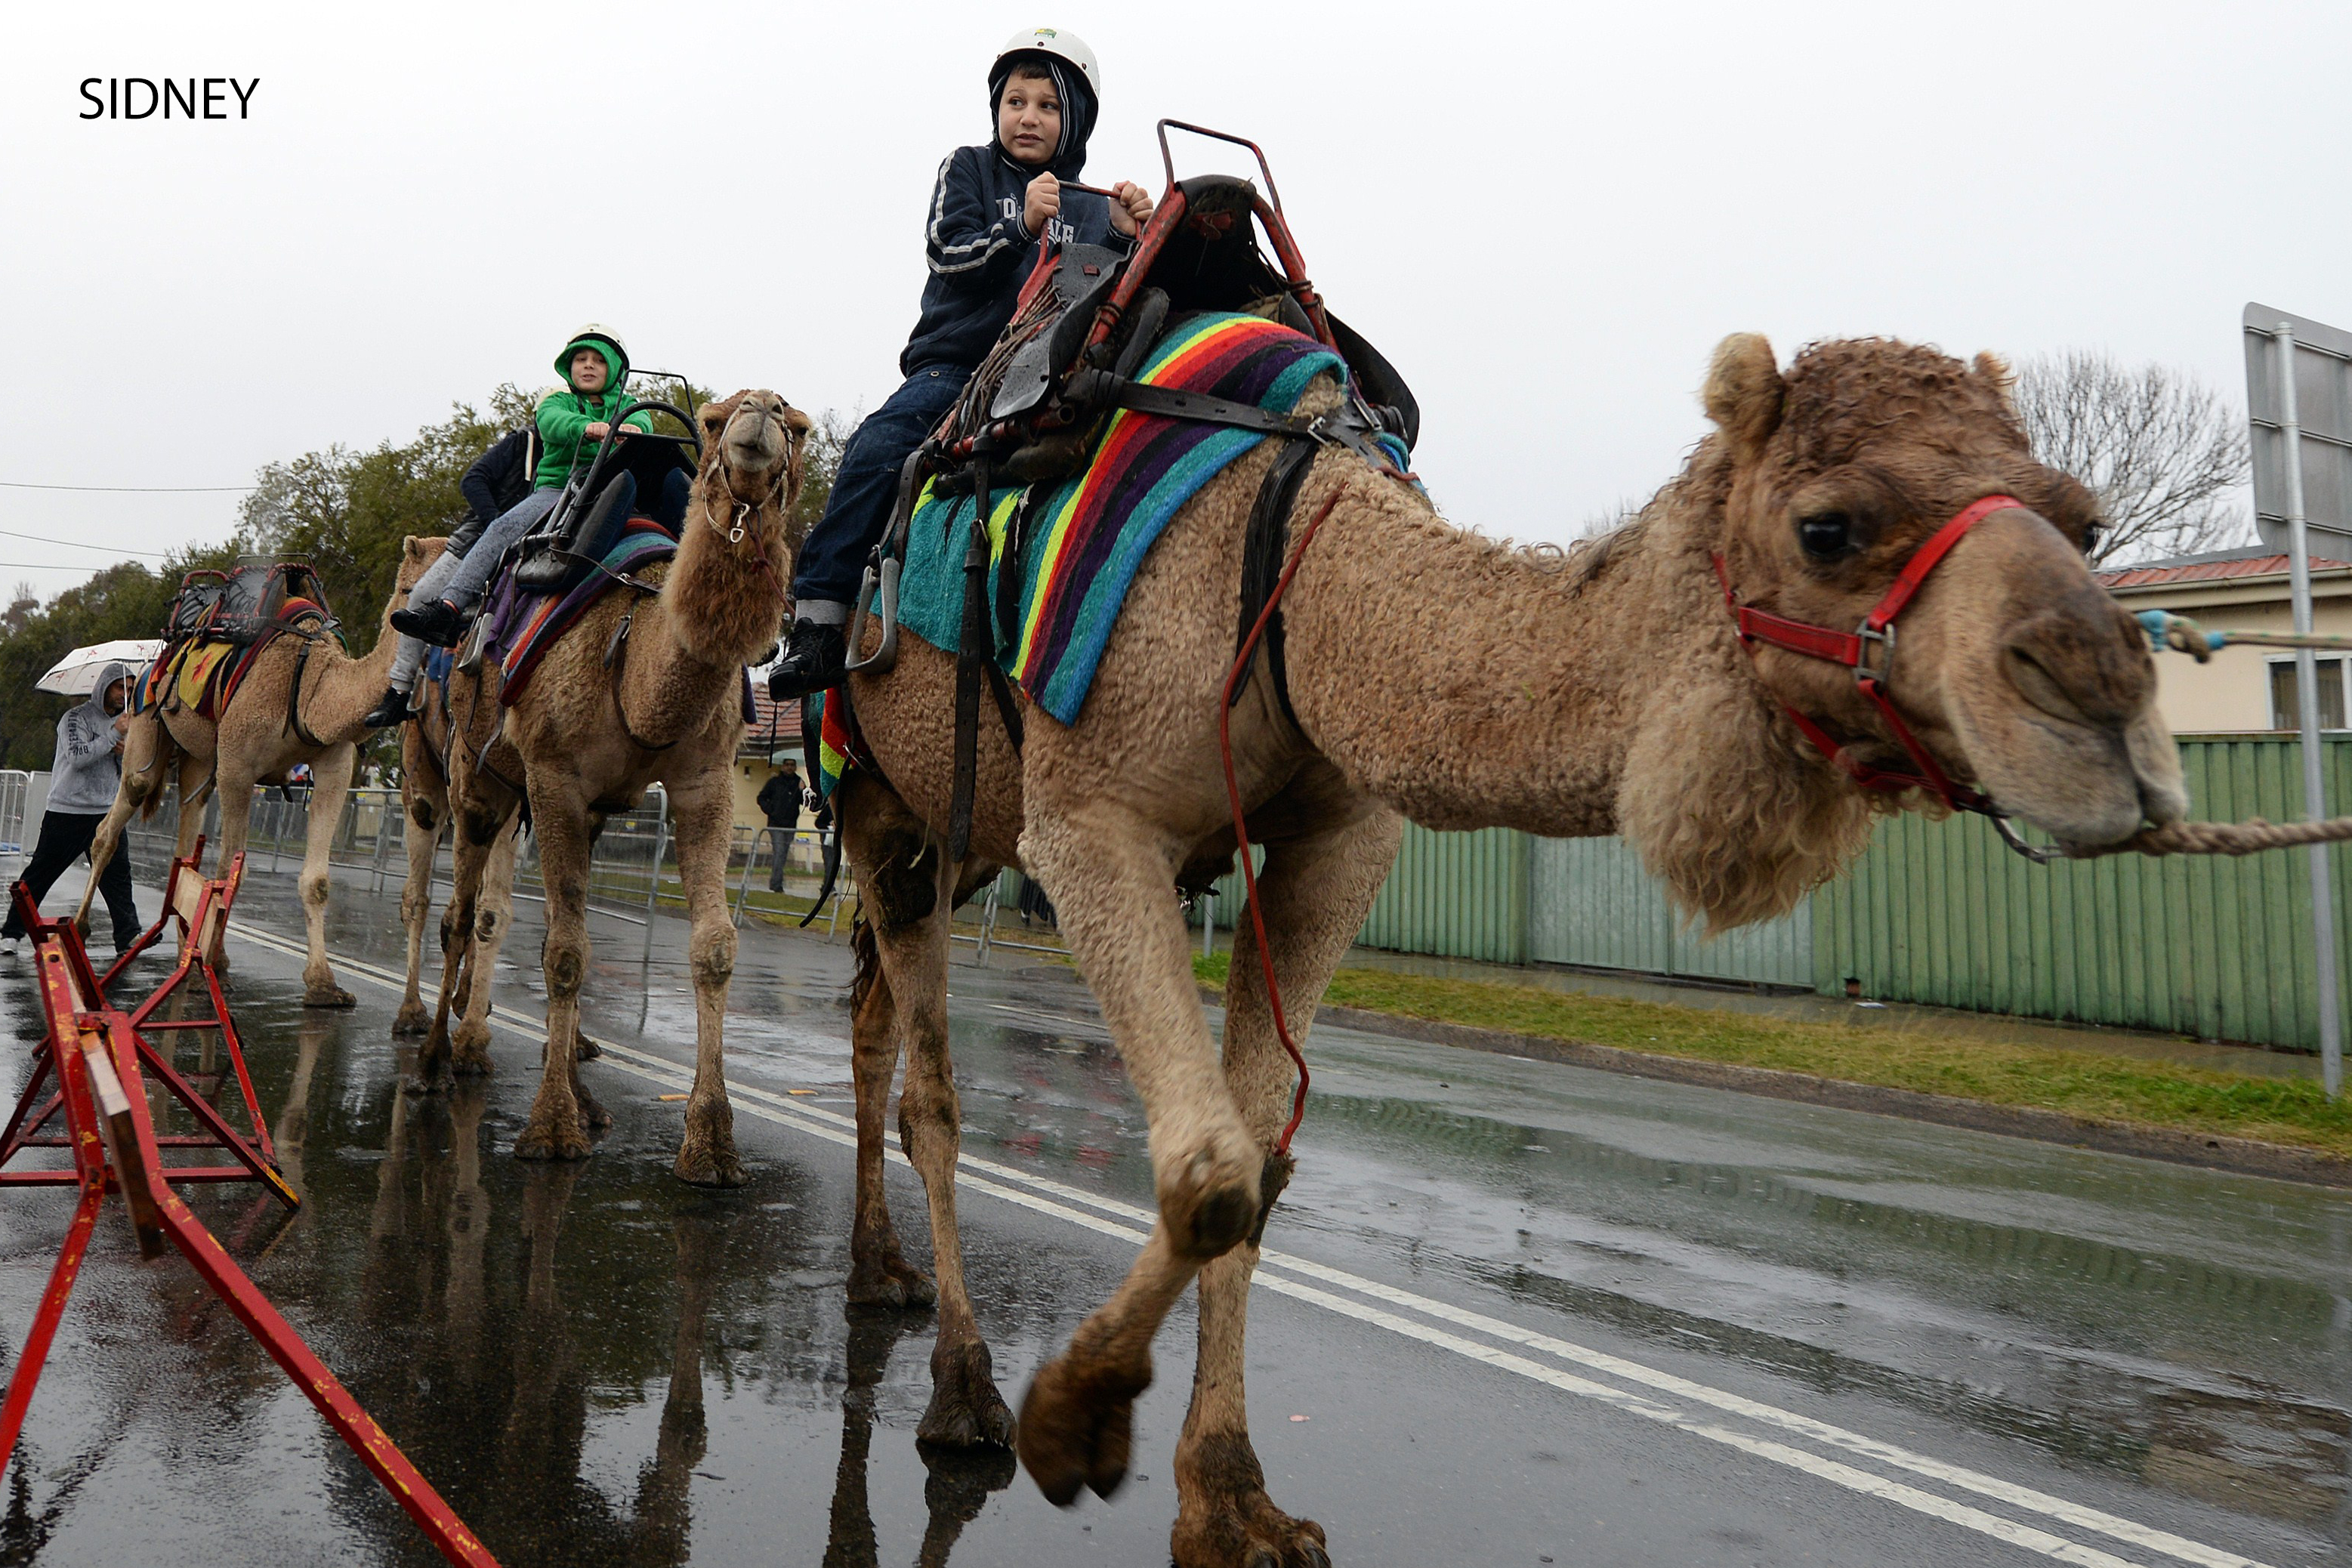 Children ride camels after a grand Eid al-Fitr prayer at the Lekamba mosque in western Sydney on July 17, 2015. Australian Muslims on July 17 celebrated their religious Eid al-Fitr festival at the end of the holy fasting month of Ramadan. AFP PHOTO / Saeed Khan (Photo credit should read SAEED KHAN/AFP/Getty Images)